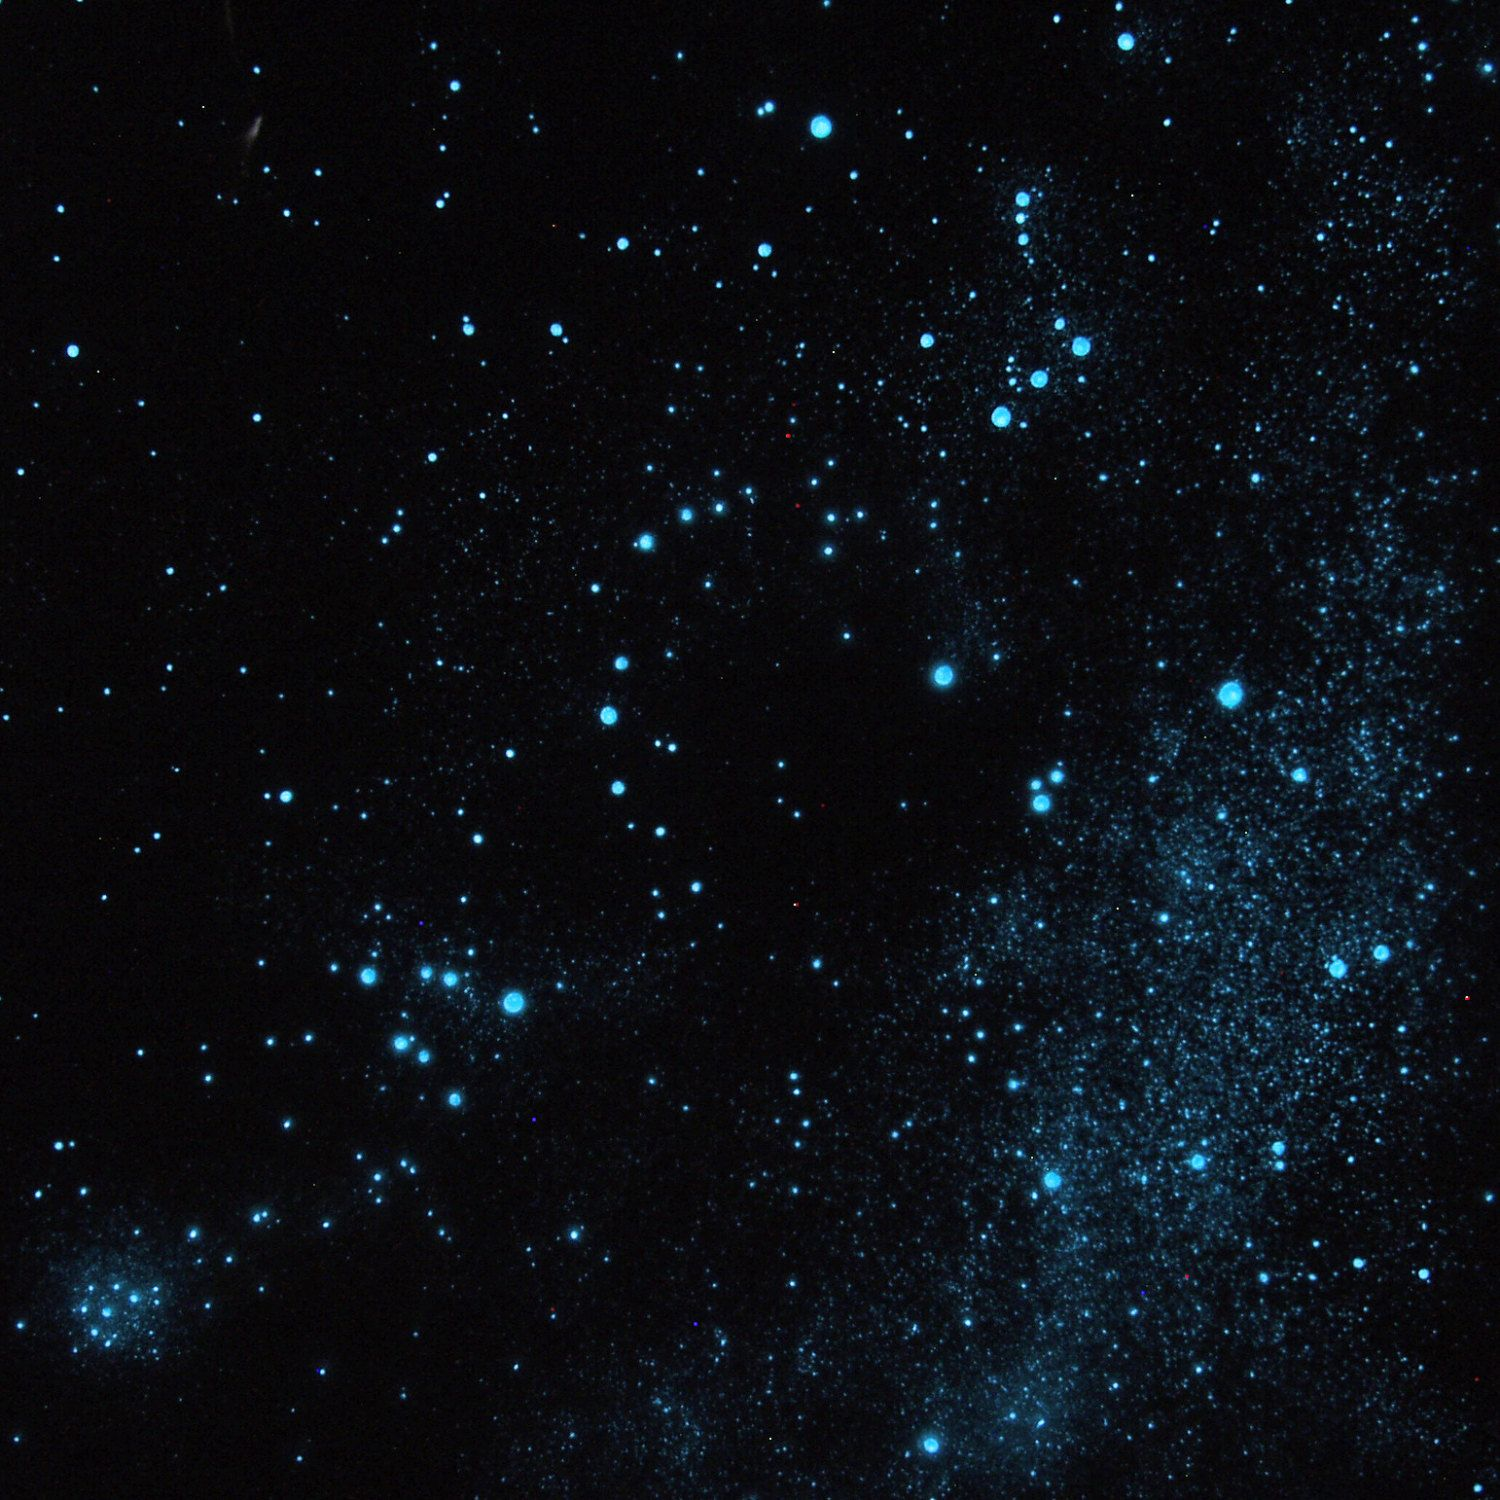 Uncategorized Star Ceiling Paint diy starry ceiling google search g dbd pinterest glow in the dark hunter and bull orion taurus pleiades cluster constellation star poster glo